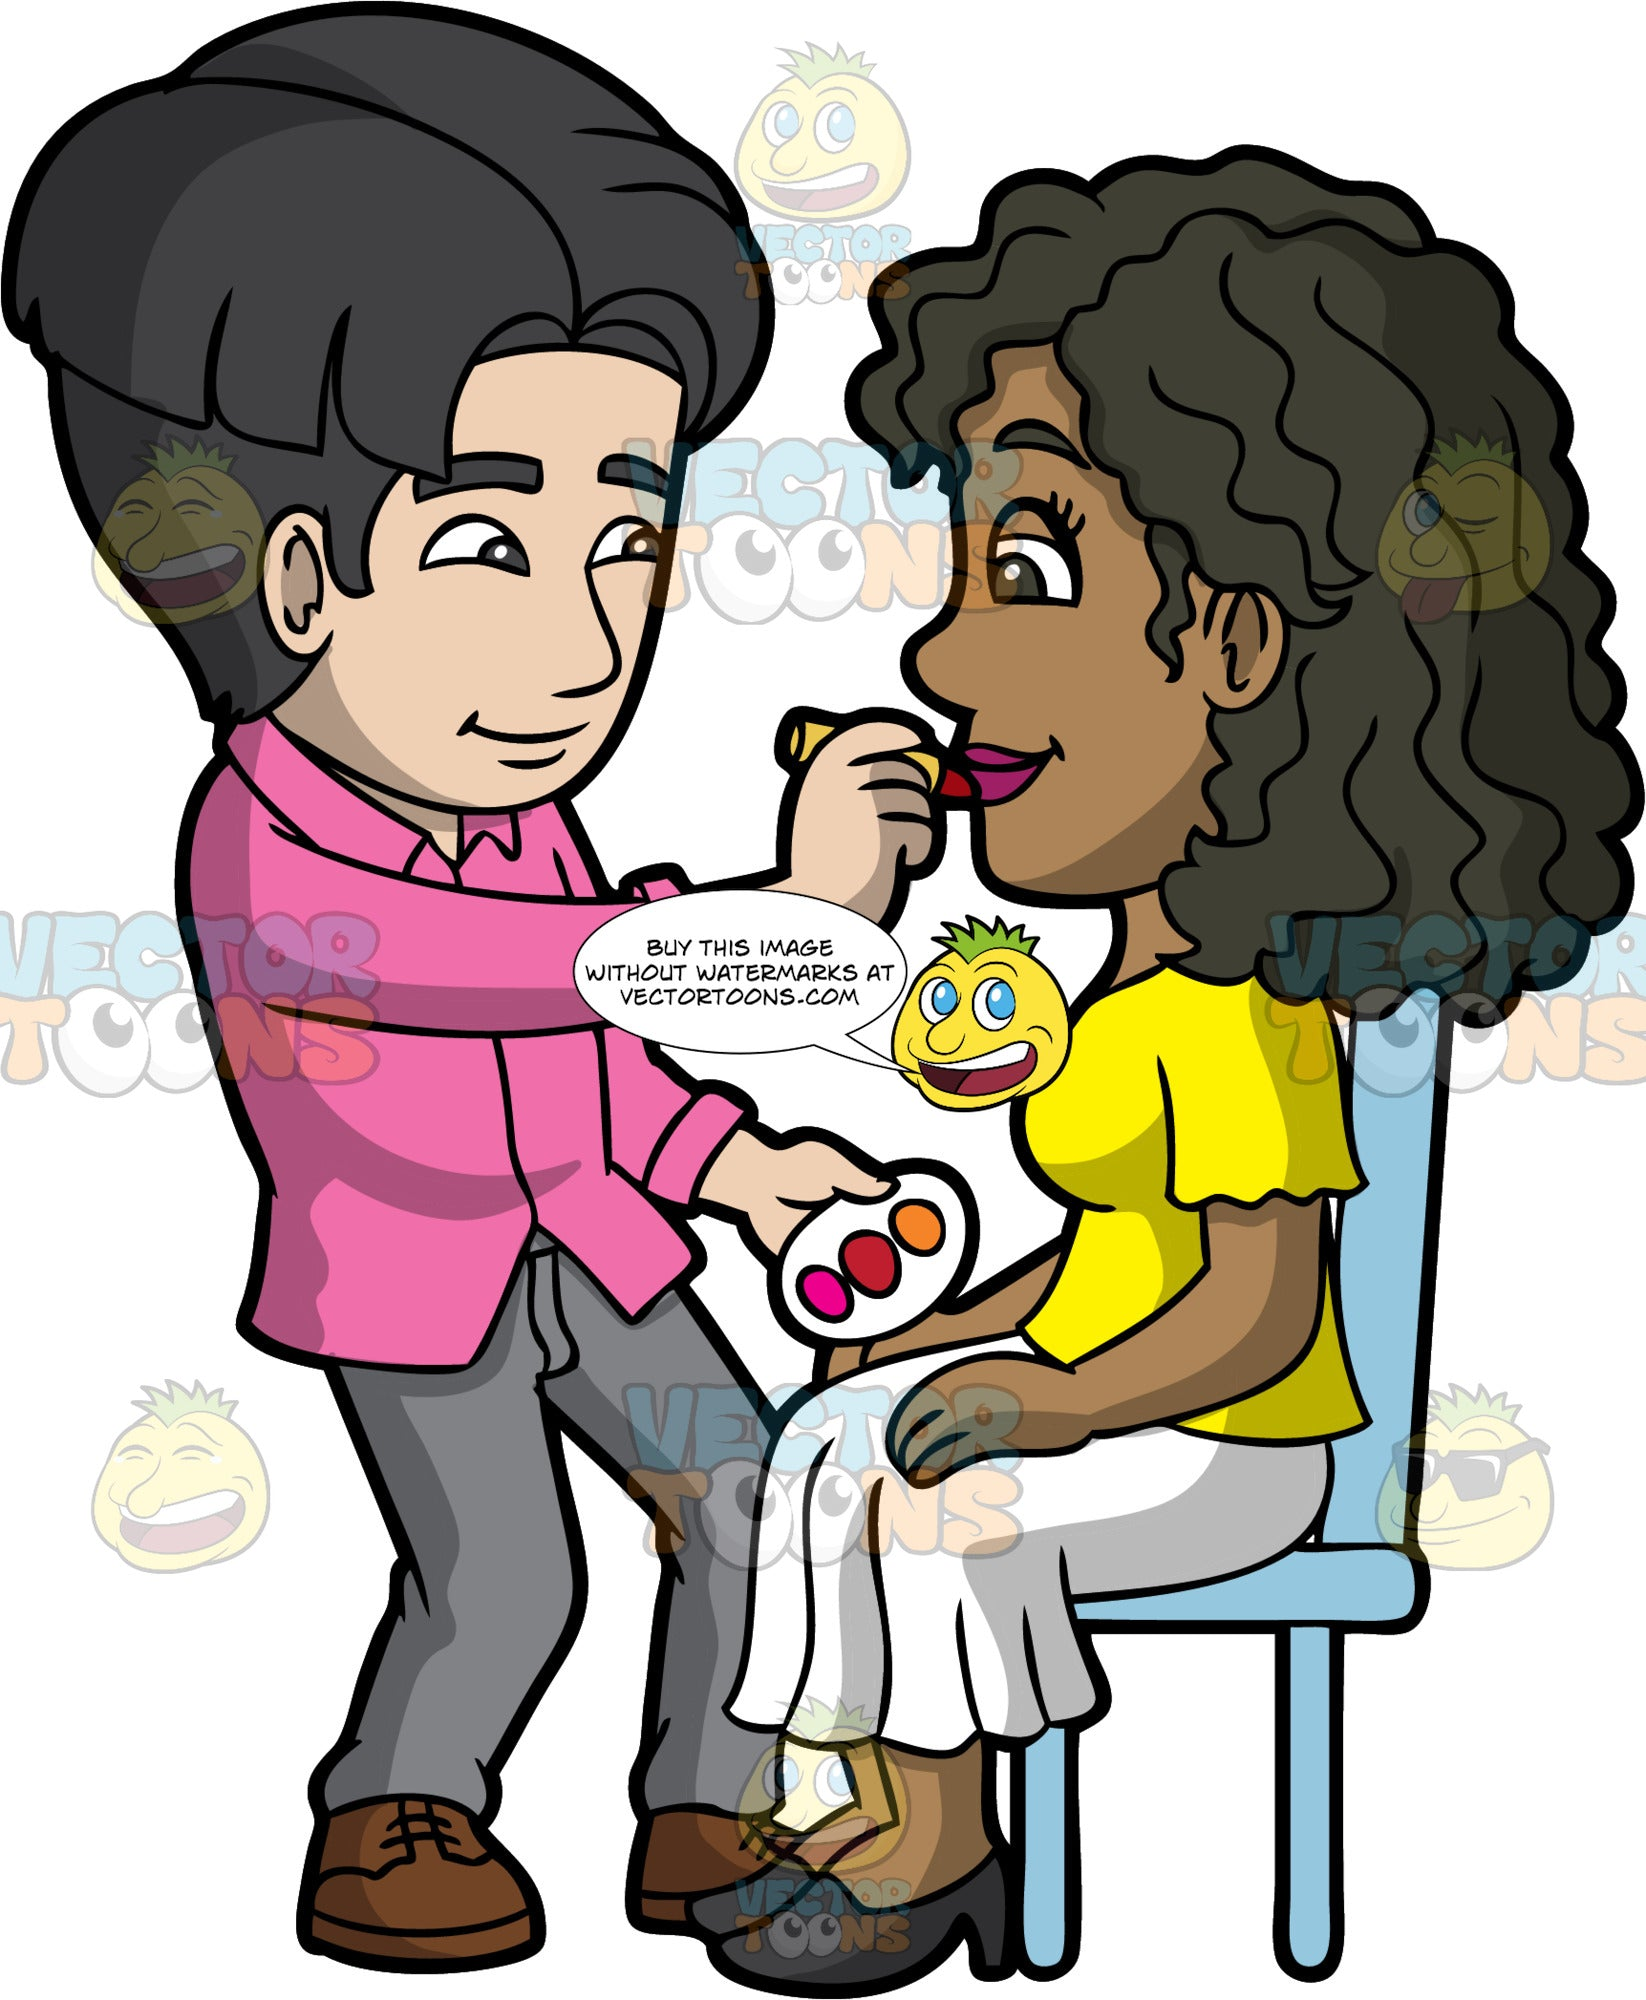 A Male Makeup Artist Applying Lip Color To A Black Woman. A male makeup artist with black hair, wearing a pink button up shirt, gray pants, brown shoes, smiles while applying red lipstick on a black woman with curly hair, wearing a yellow blouse, white skirt, black heels, sitting on a light blue chair